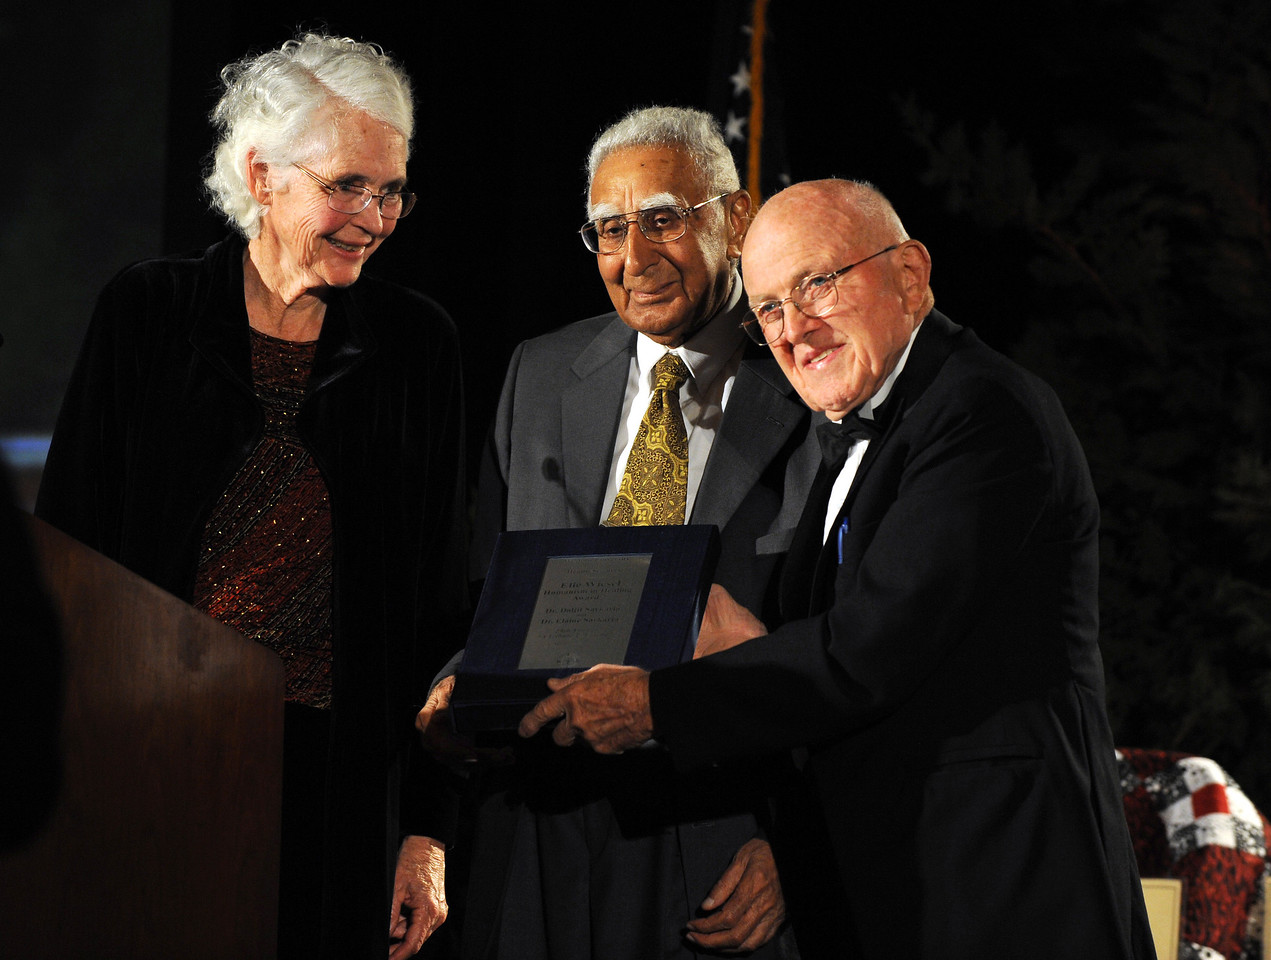 Drs. Daljit and Elaine Sarkaria, receive the Elie Wiesel Humanism in Healing award presented by WesternU Board of Trustee Dr. Ethan Allen during the 29th A Tribute to Caring gala at Disney's Grand Californian Hotel & Spa in Anaheim Saturday Nov. 14, 2009. (Jeff Malet, WesternU)